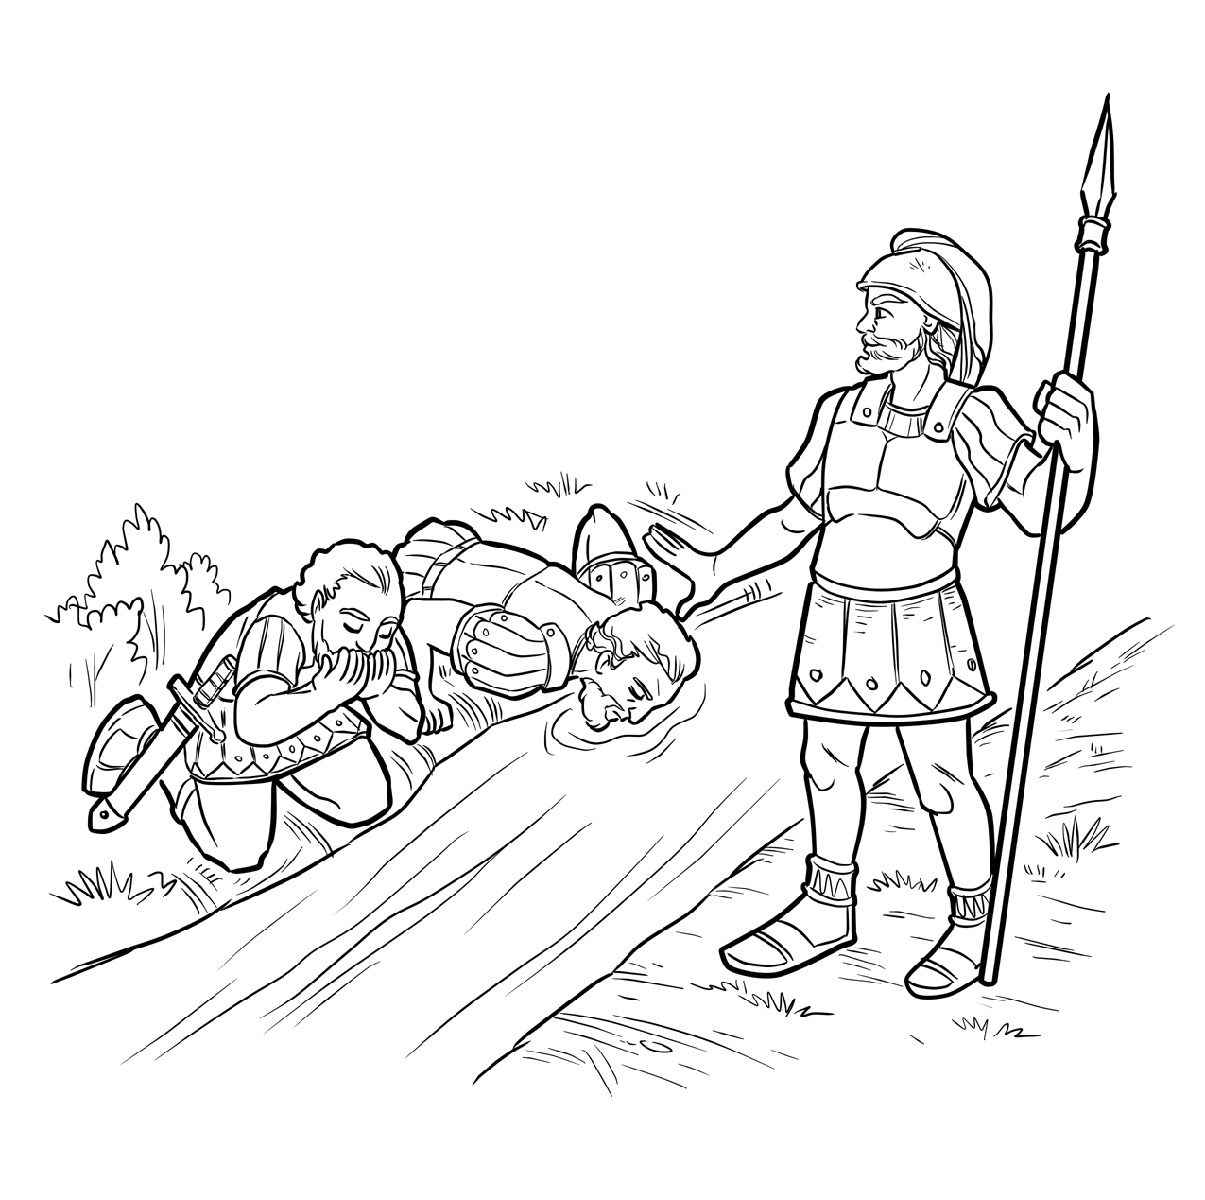 Gideon Coloring Pages For All Generations